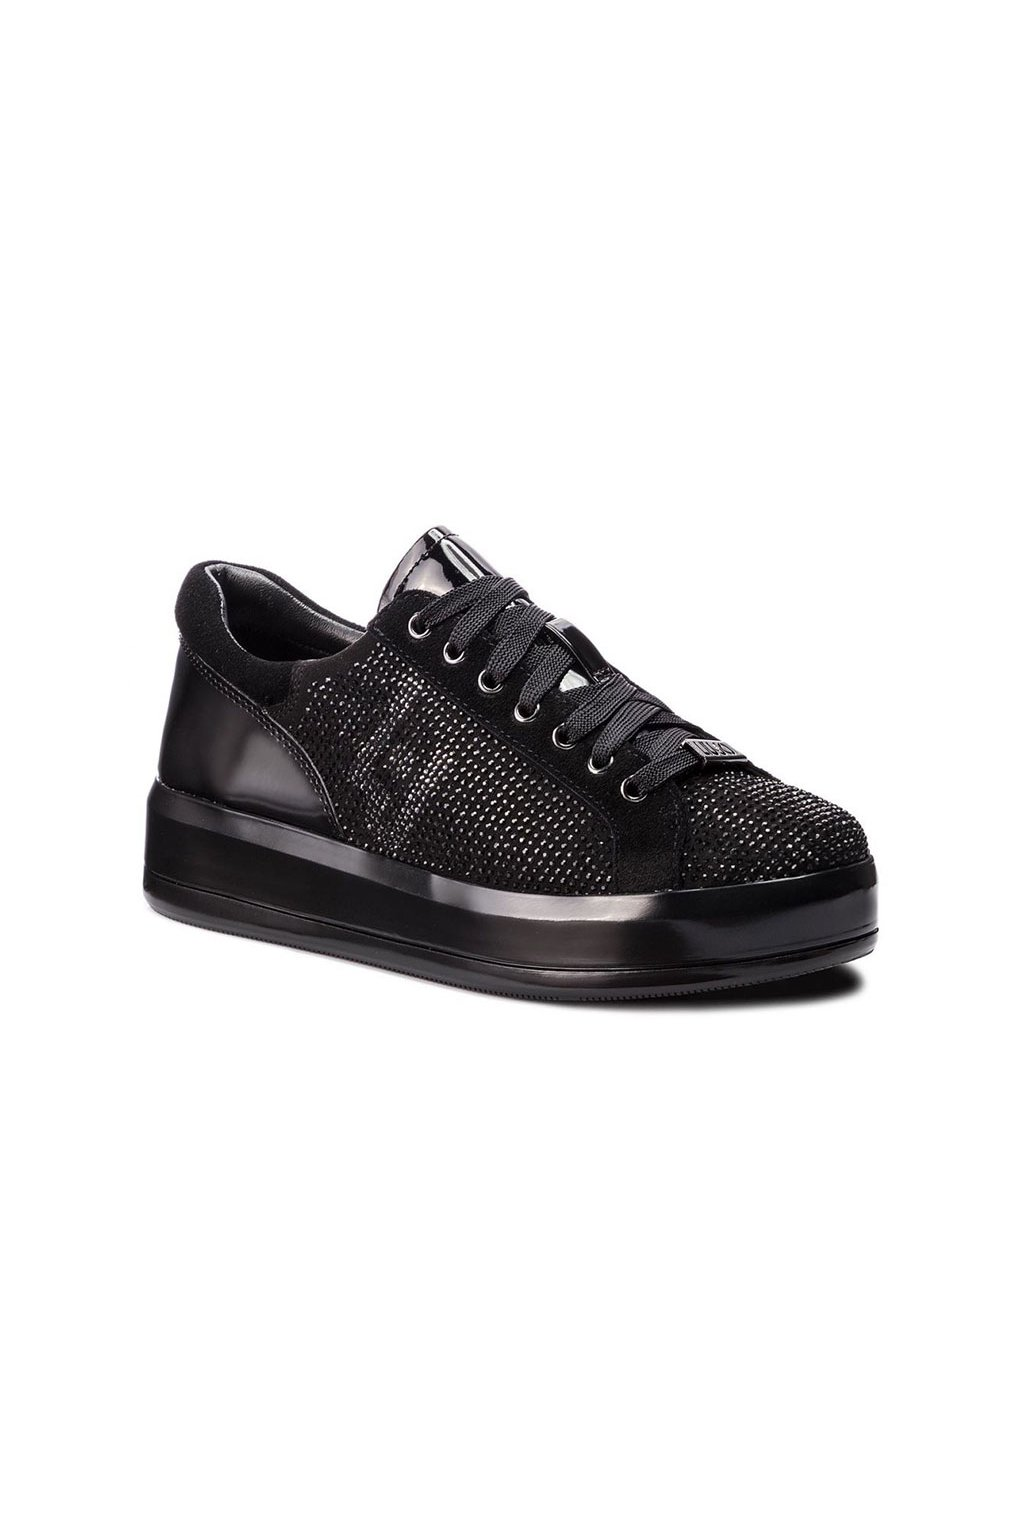 LIU JO Kim 07- lace up microfiber black